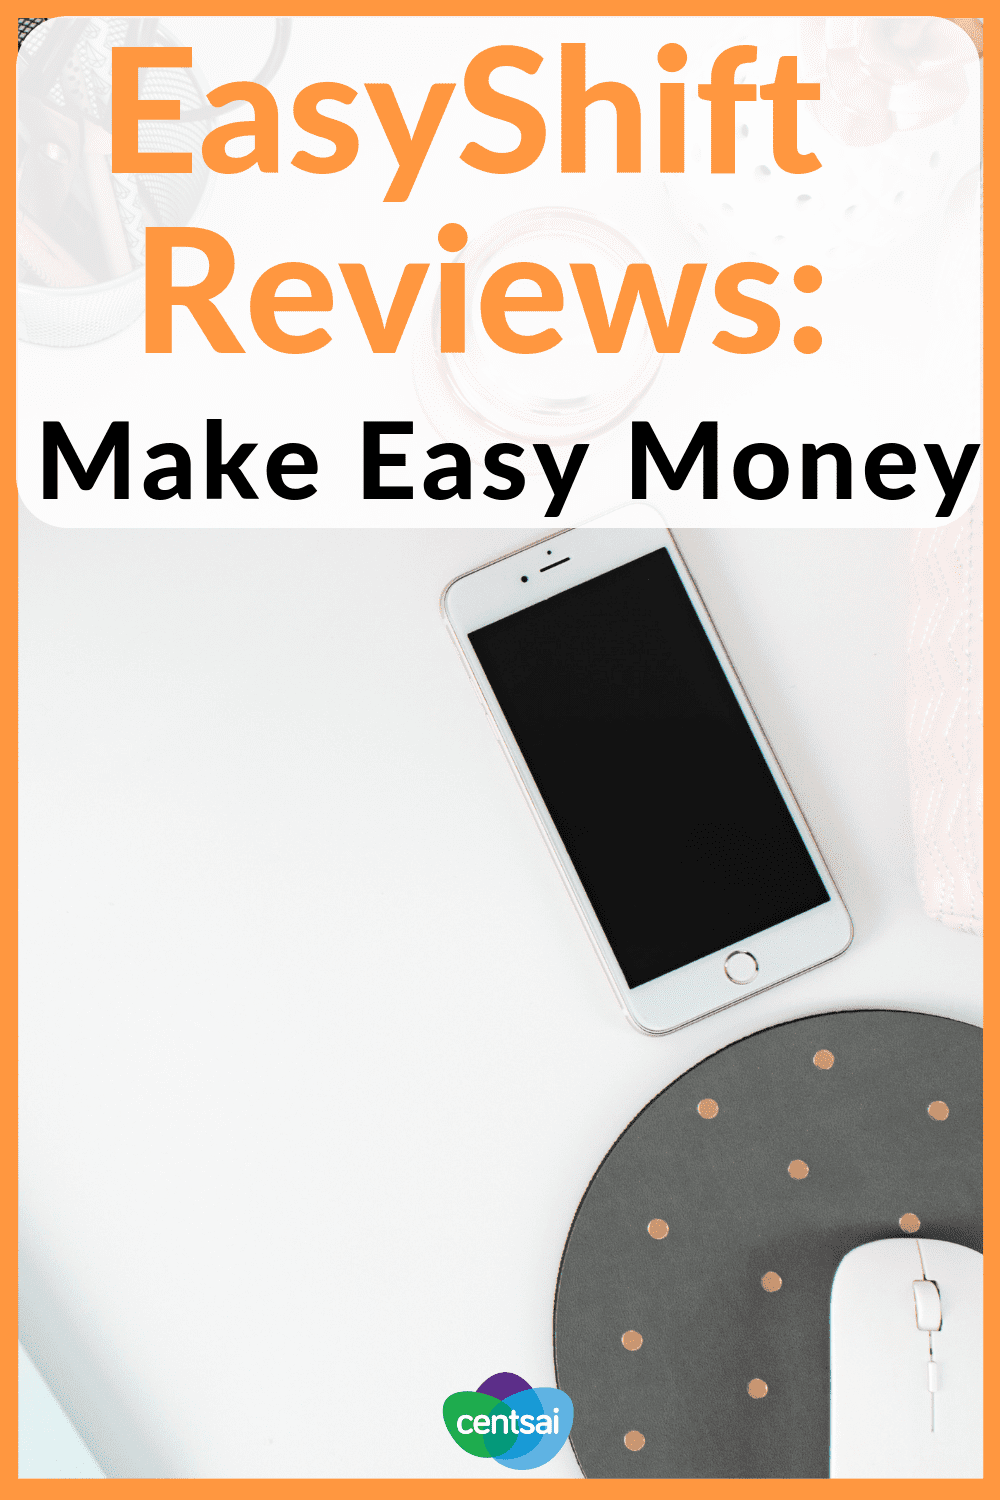 EasyShift Reviews: Make Easy Money. Looking for an easy side hustle? There are tons of apps for that. Check out our EasyShift reviews to see if this app is the best one for you. #makemoremoney #sidehustle #easyshift